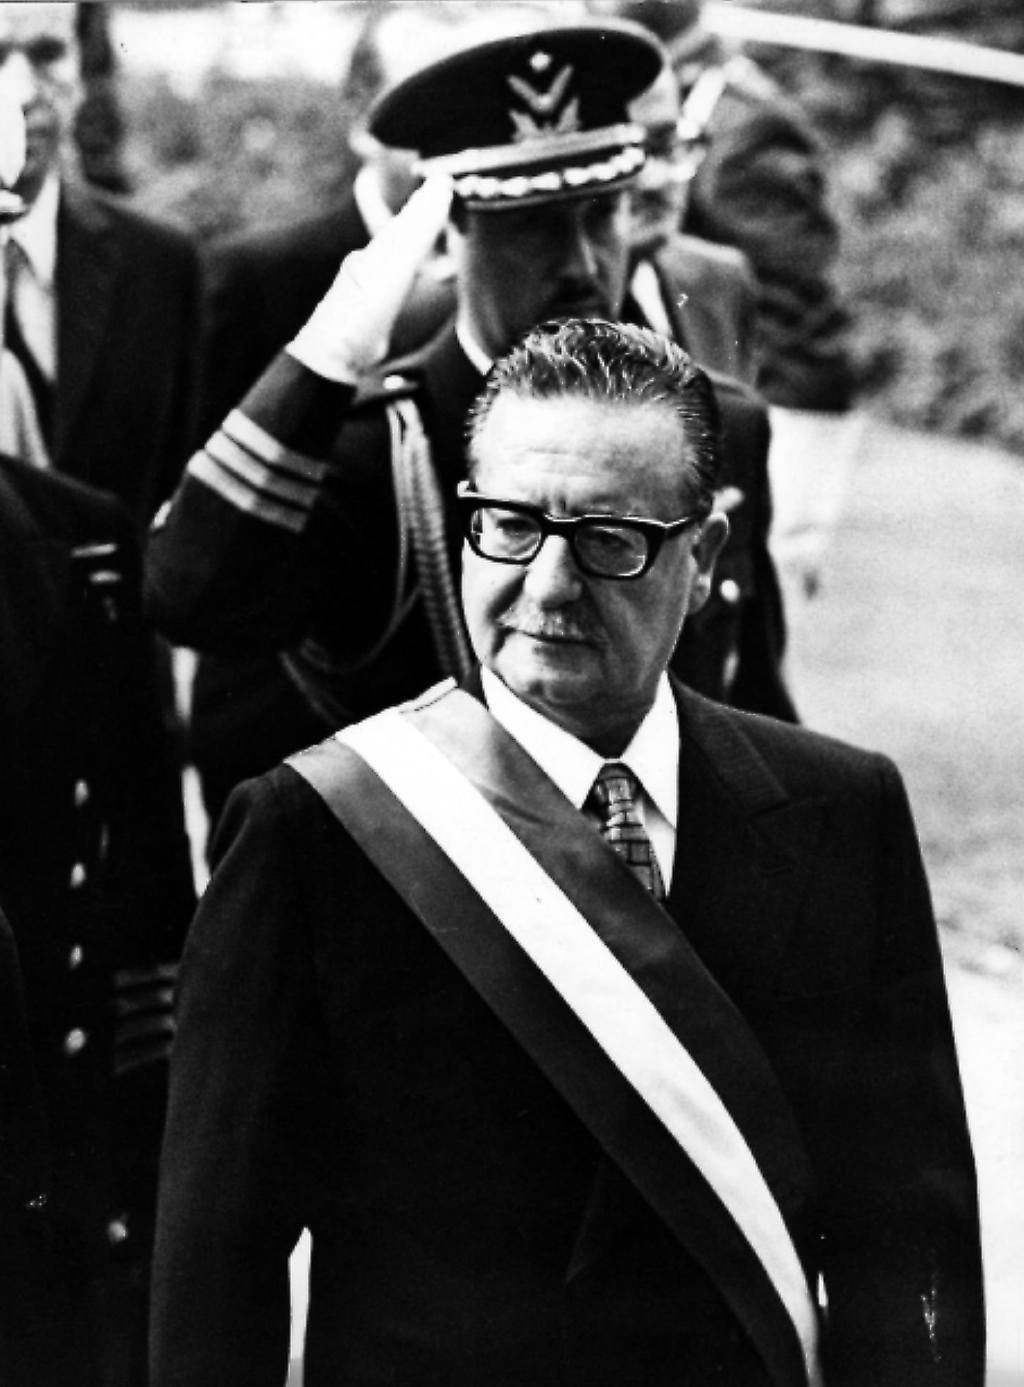 an introduction to the life and political history of salvador allende gossens Salvador isabelino allende gossens [1] allende's involvement in chilean political life spanned a period of history of chile under salvador allende and the.